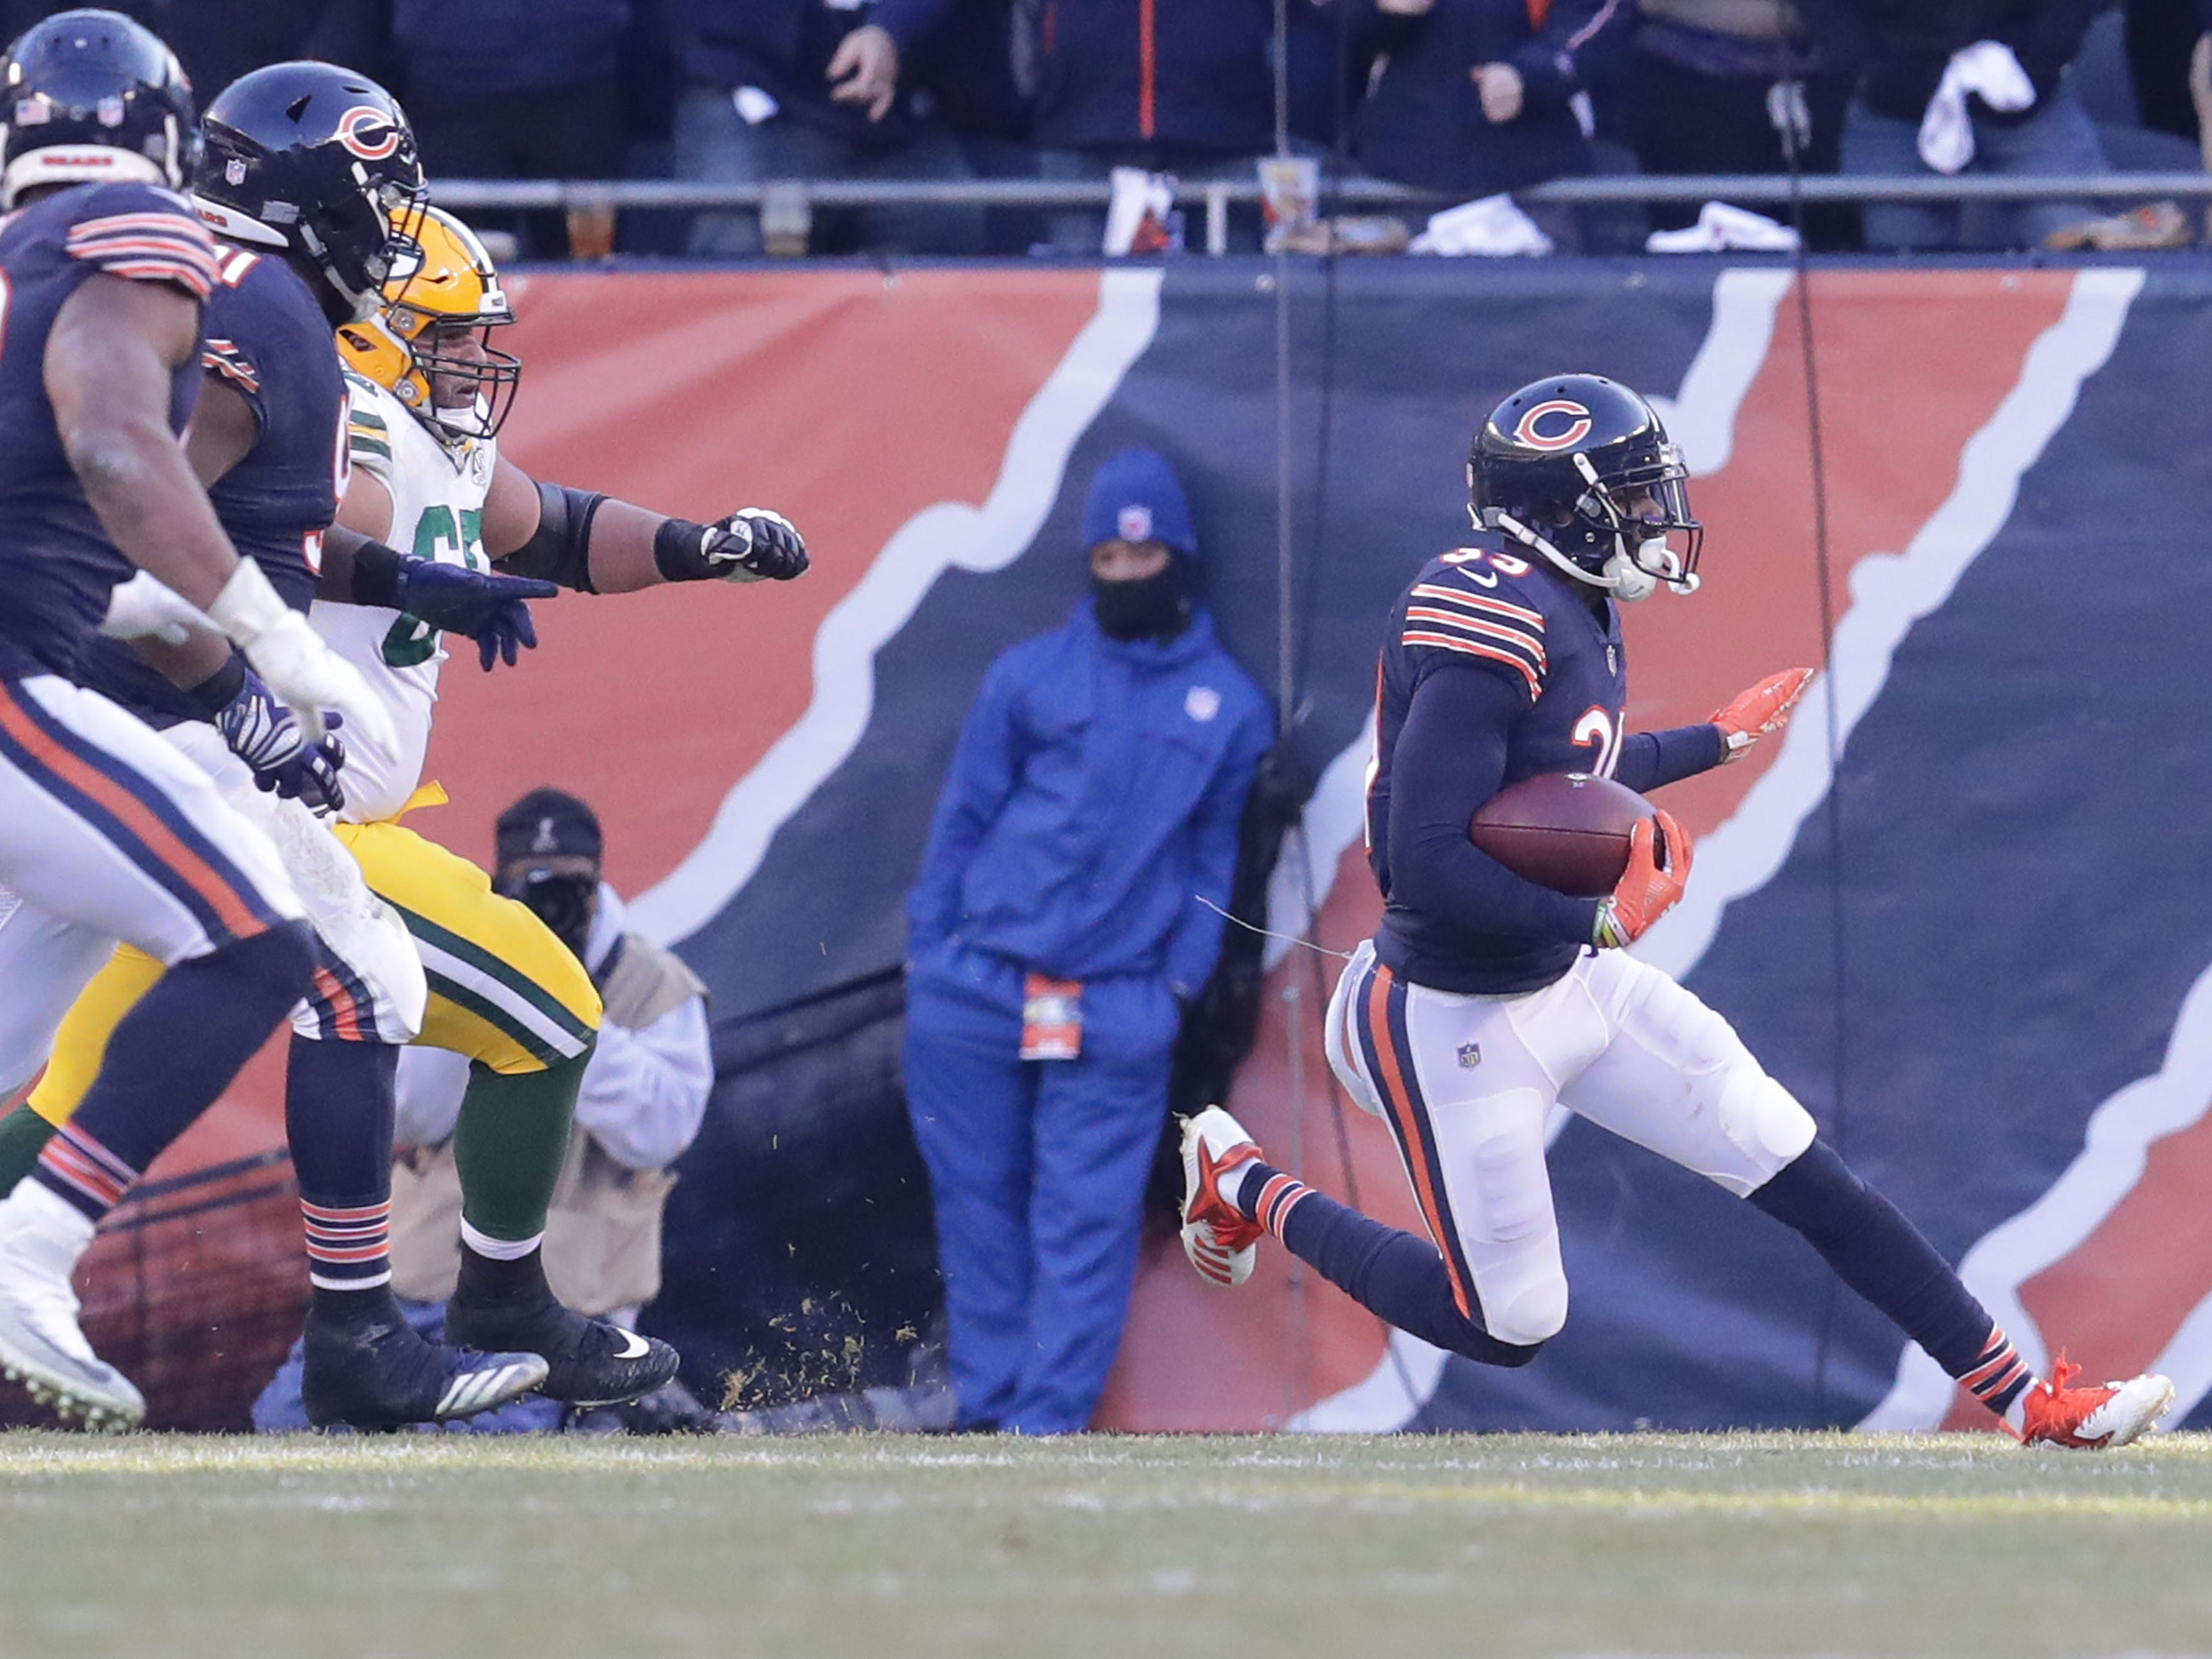 Chicago Bears' Eddie Jackson runs with the ball after and interception of Aaron Rodgers pass during the 2nd half of the Green Bay Packers 24-17 loss to the Chicago Bears at Soldier Field Sunday, Dec. 16, 2018, in Chicago. Photo by Mike De Sisti / The Milwaukee Journal Sentinel